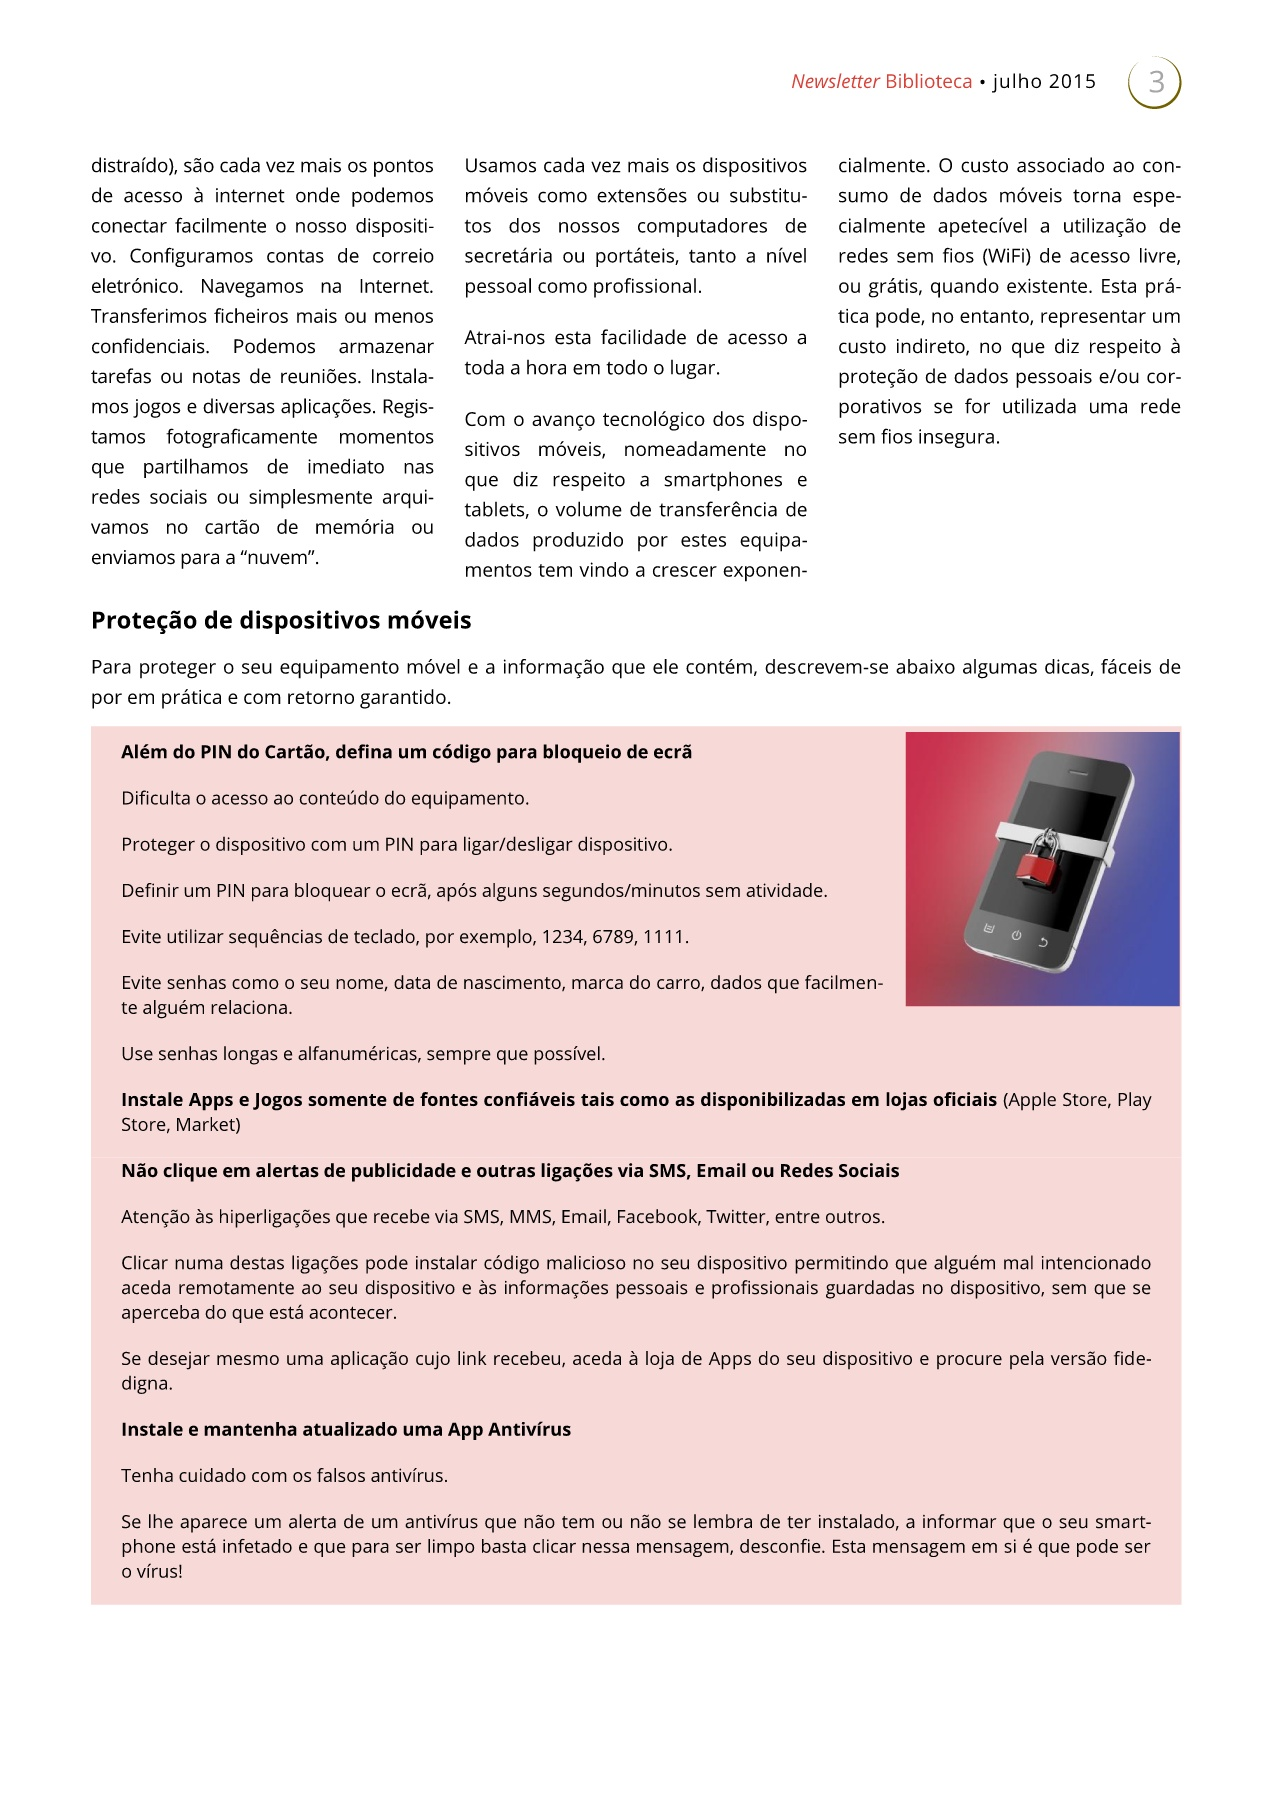 Newsletter_jul'15_v 3 - Internet